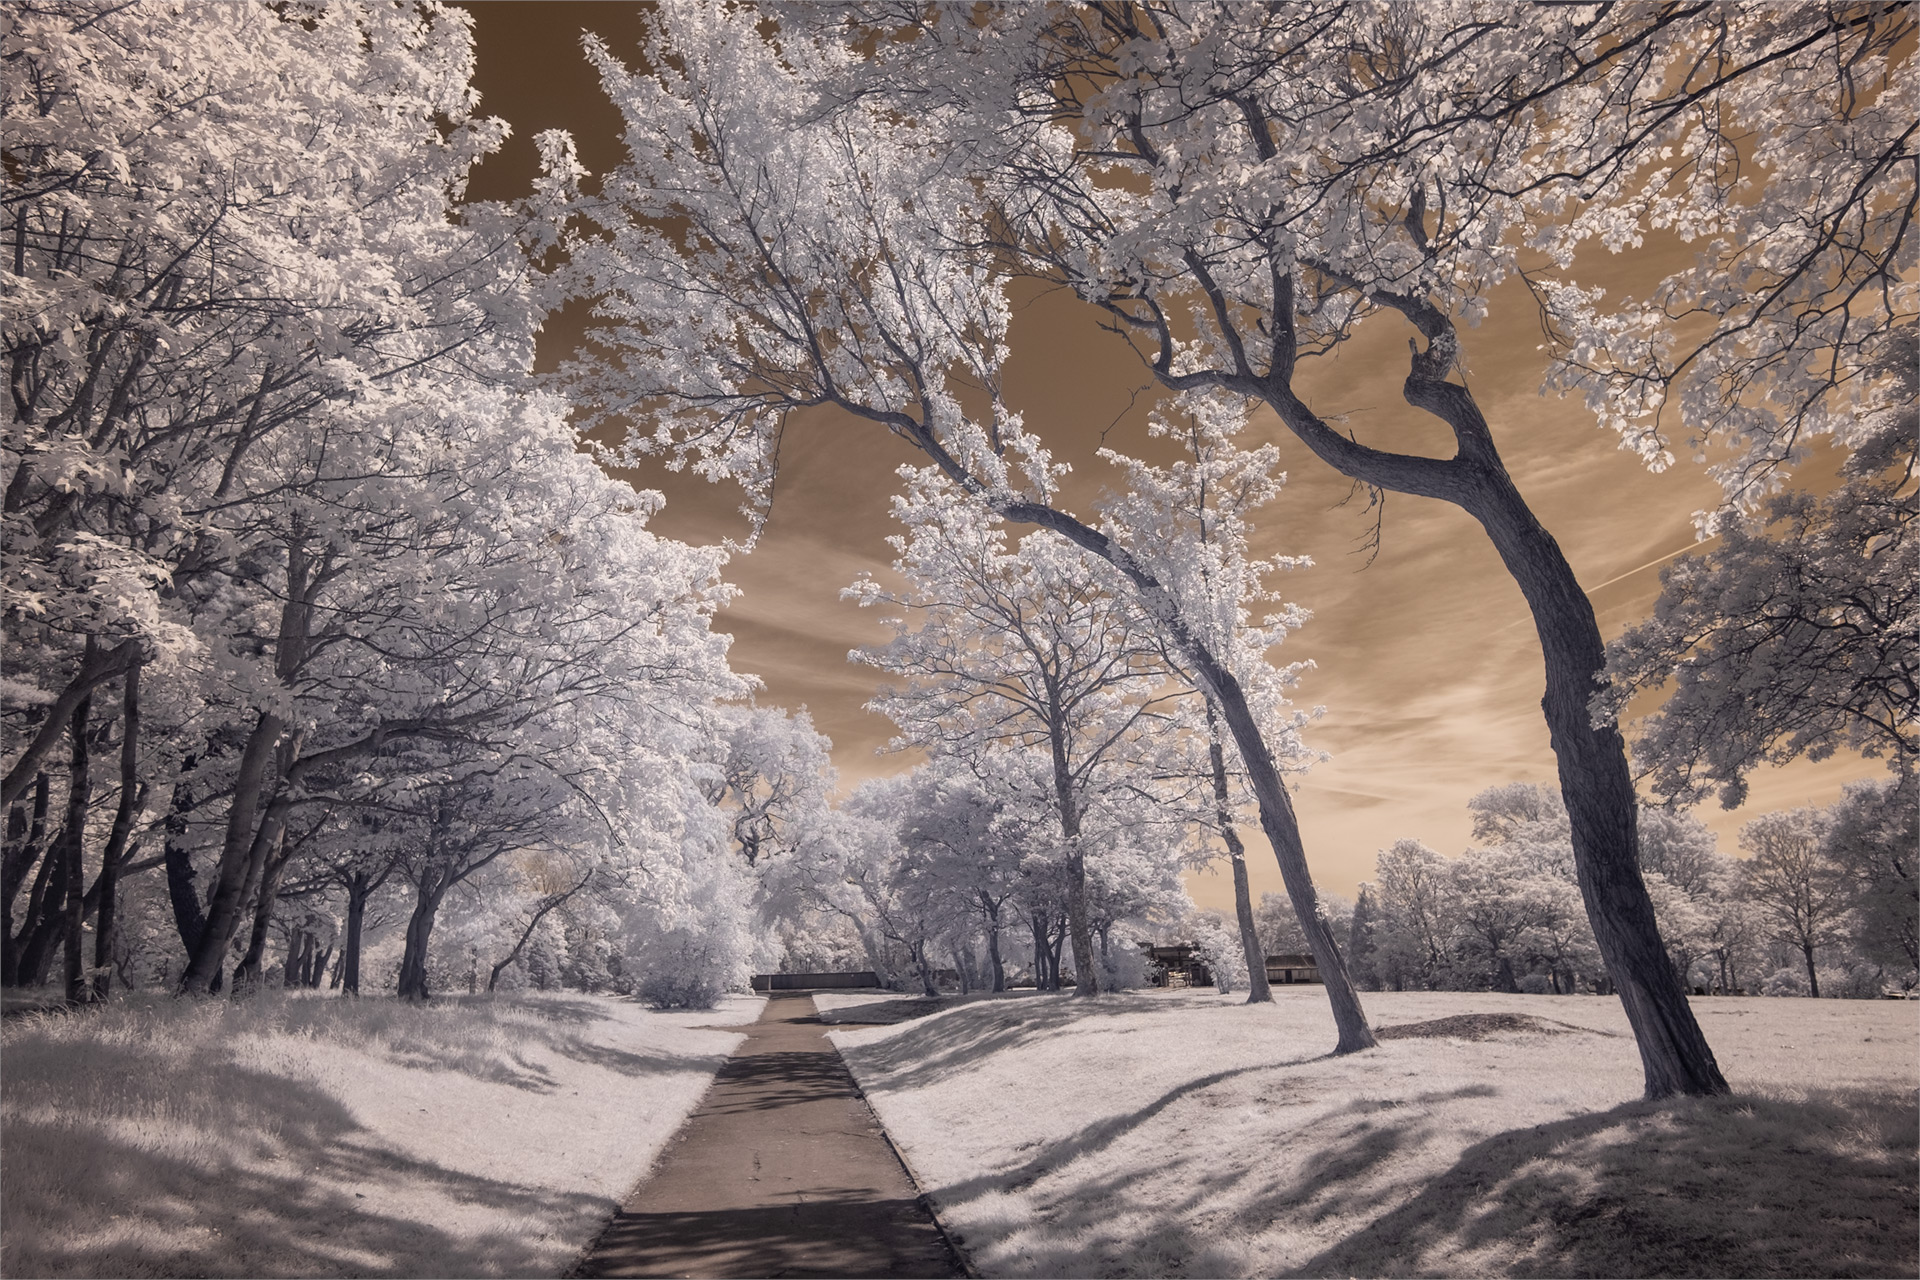 Stanley Park, May 2019 (IR) #2 / Stanley Park, Show the Original, Landscape Photography, Infrared, Fujinon XF 14mm f/2.8, Fujifilm X-E2, Blackpool [stanley park may 2019 2 o]